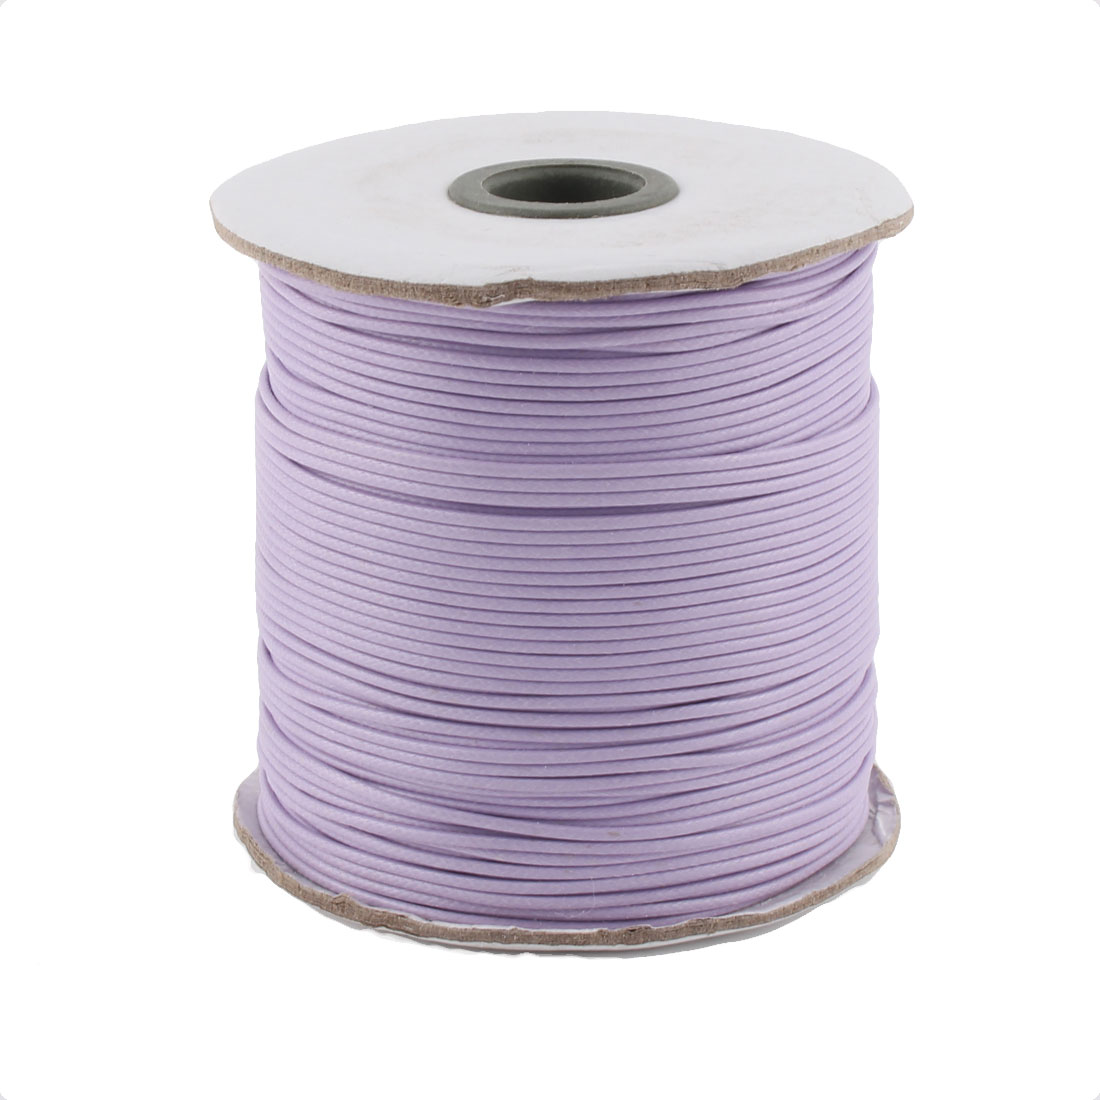 Cotton Waxed Making String Beading Thread Cord Roll Light Purple 190 Yard for Beads Jewelry